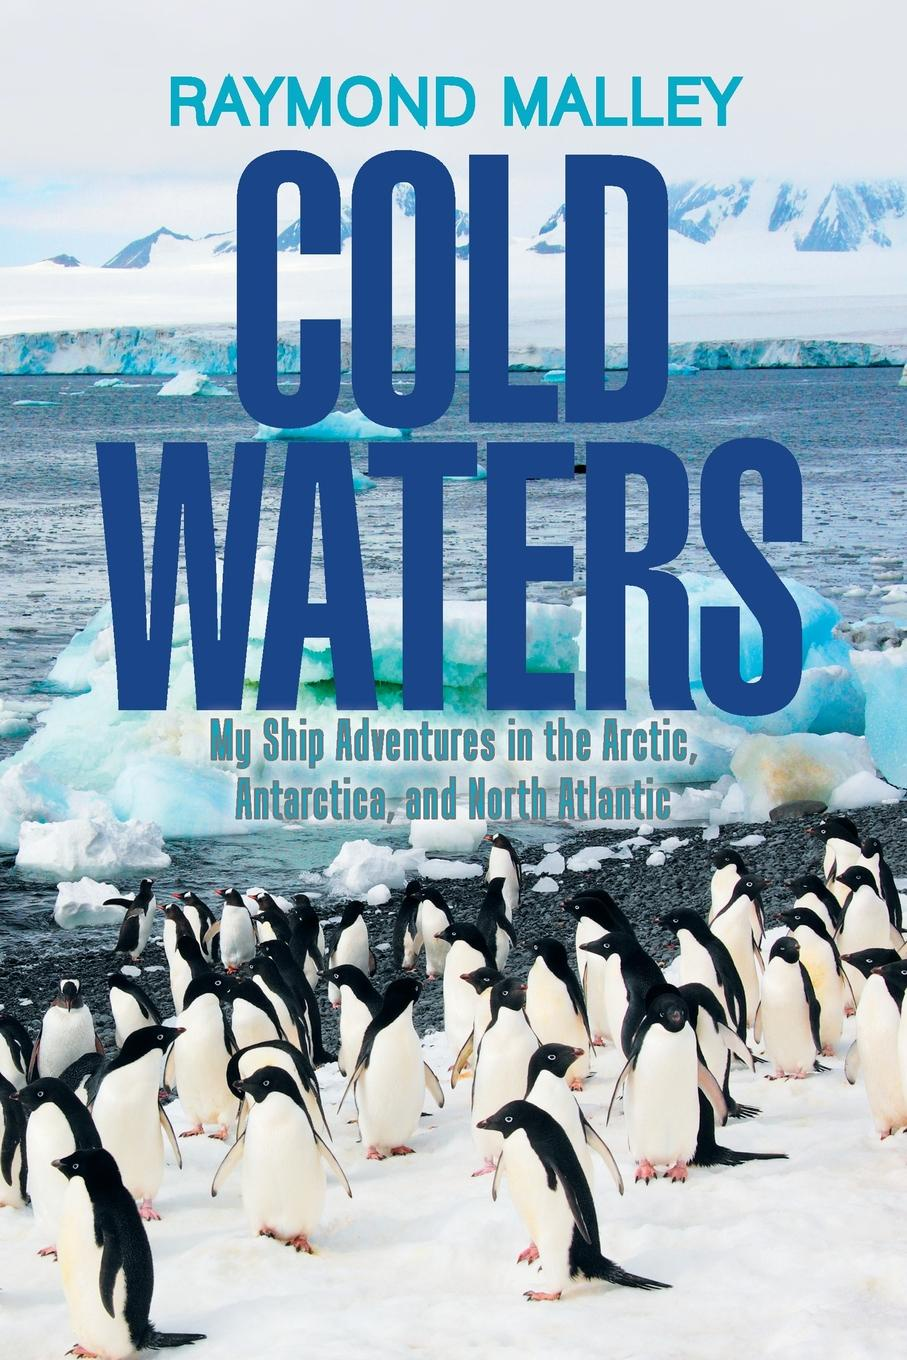 Raymond Malley Cold Waters. My Ship Adventures in the Arctic, Antarctica, and North Atlantic